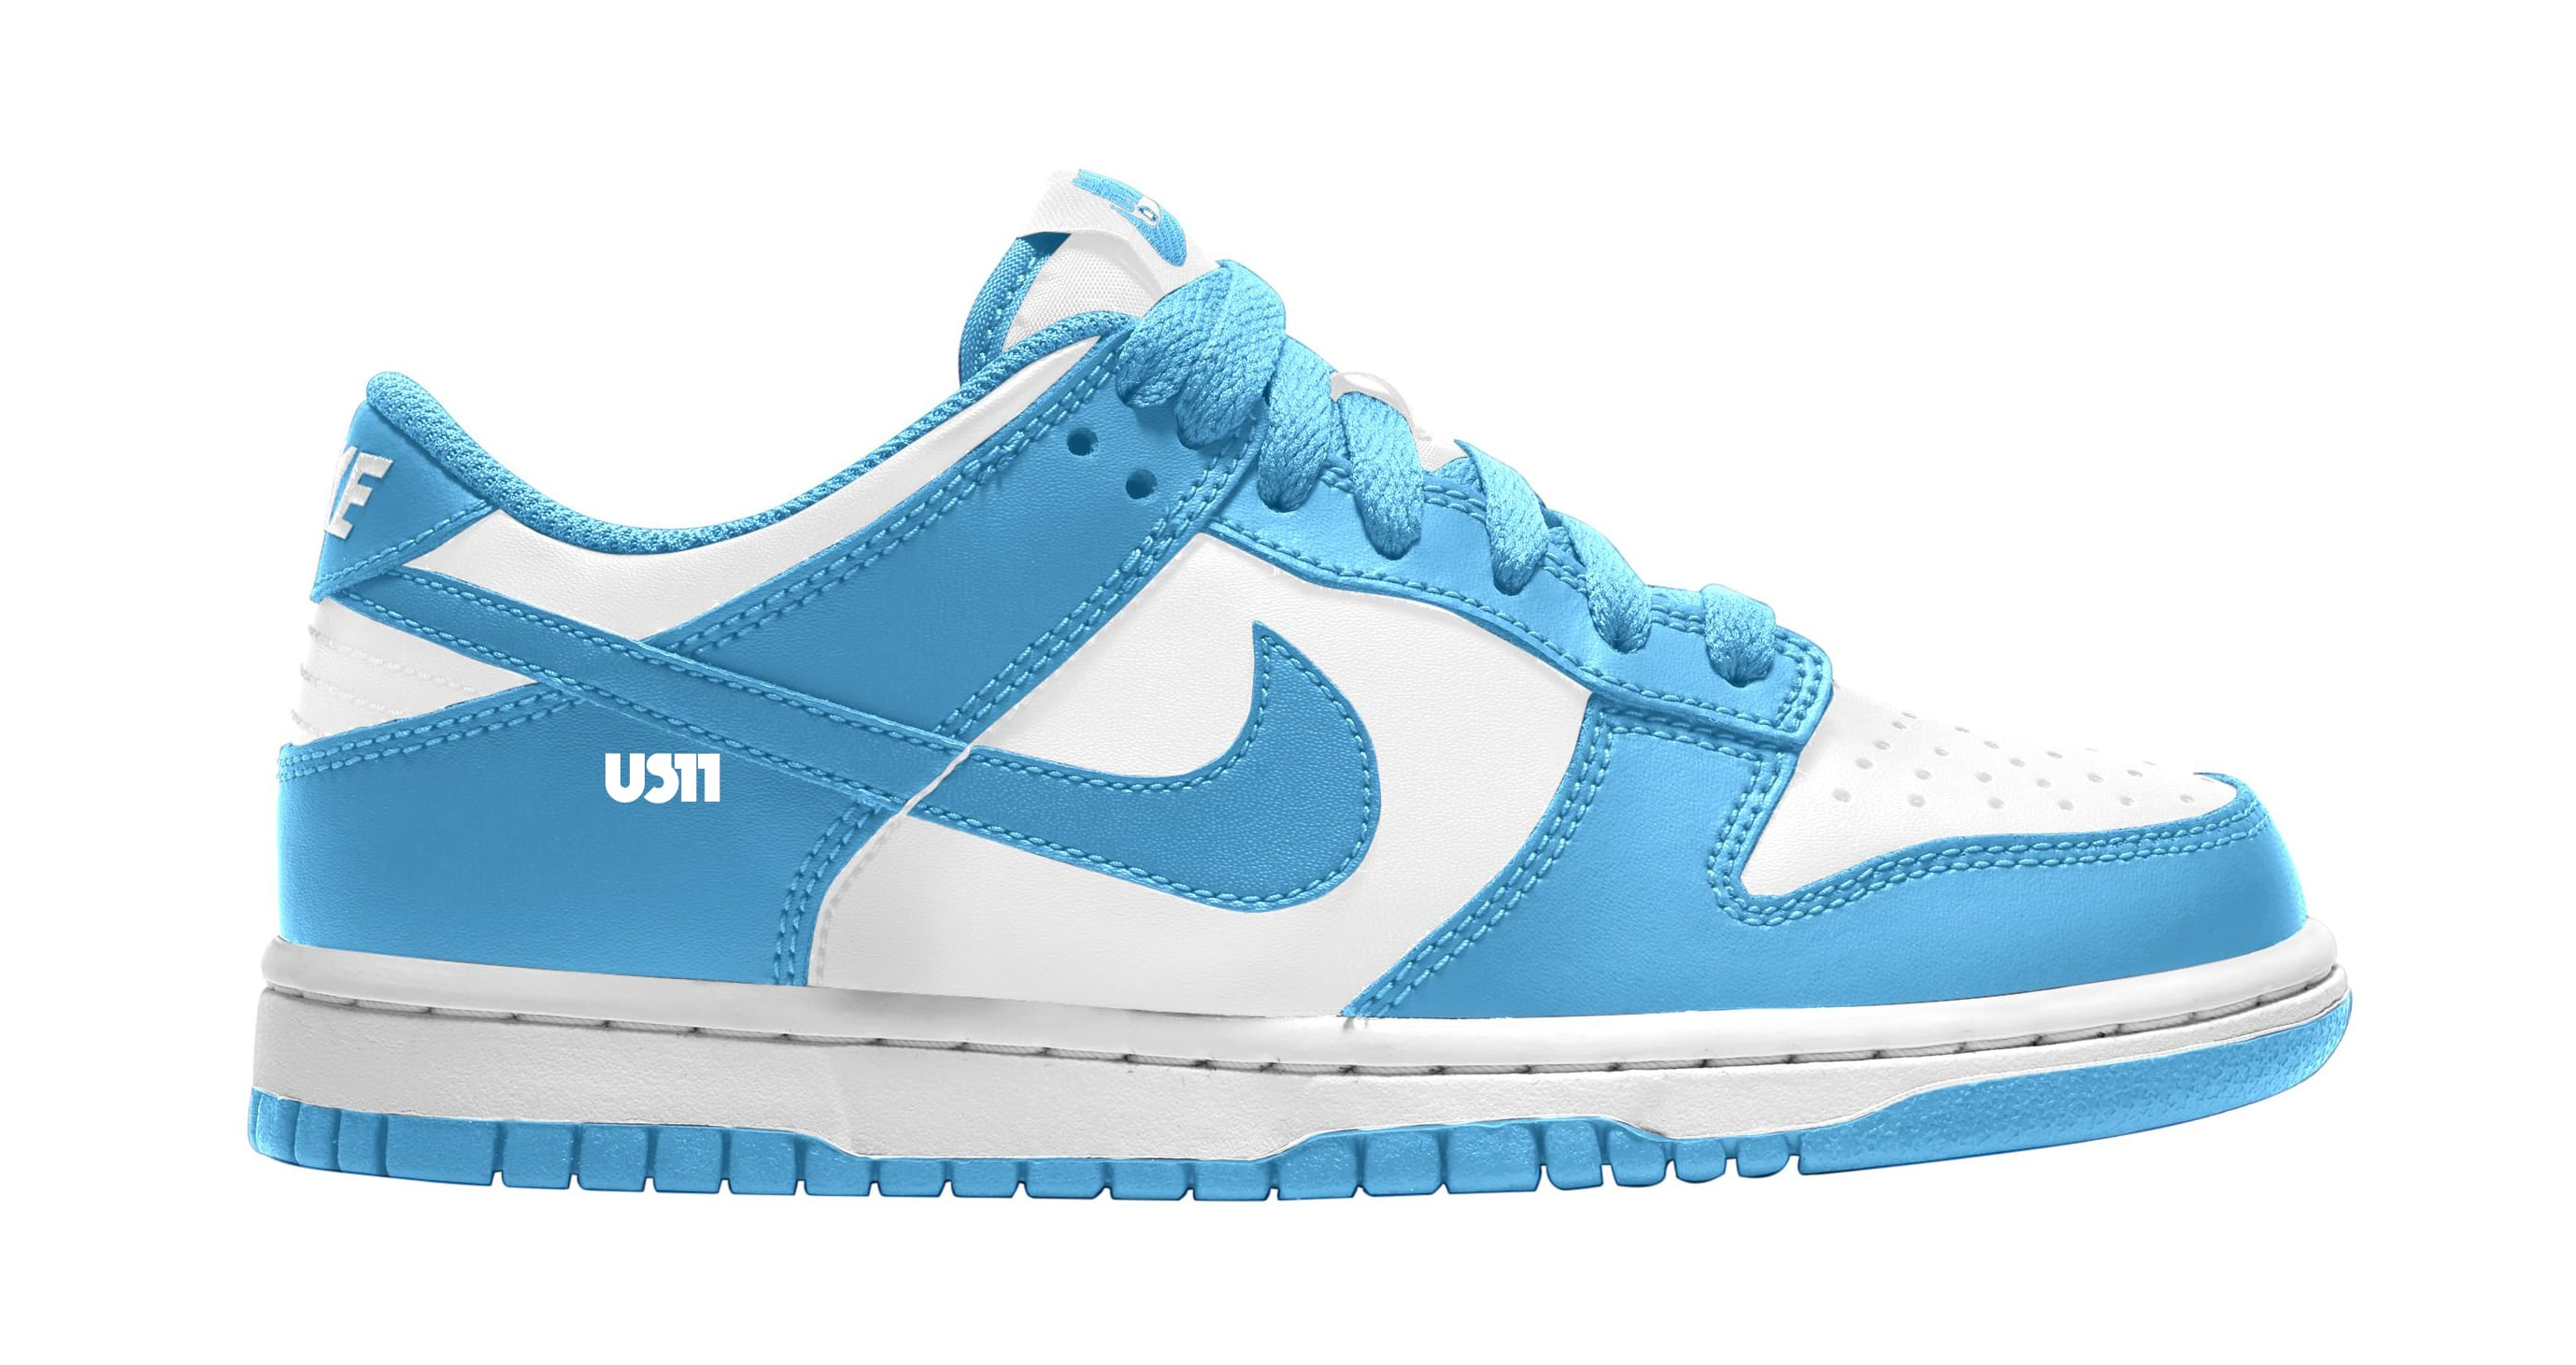 Nike Dunk Low GS White/Blue Lateral